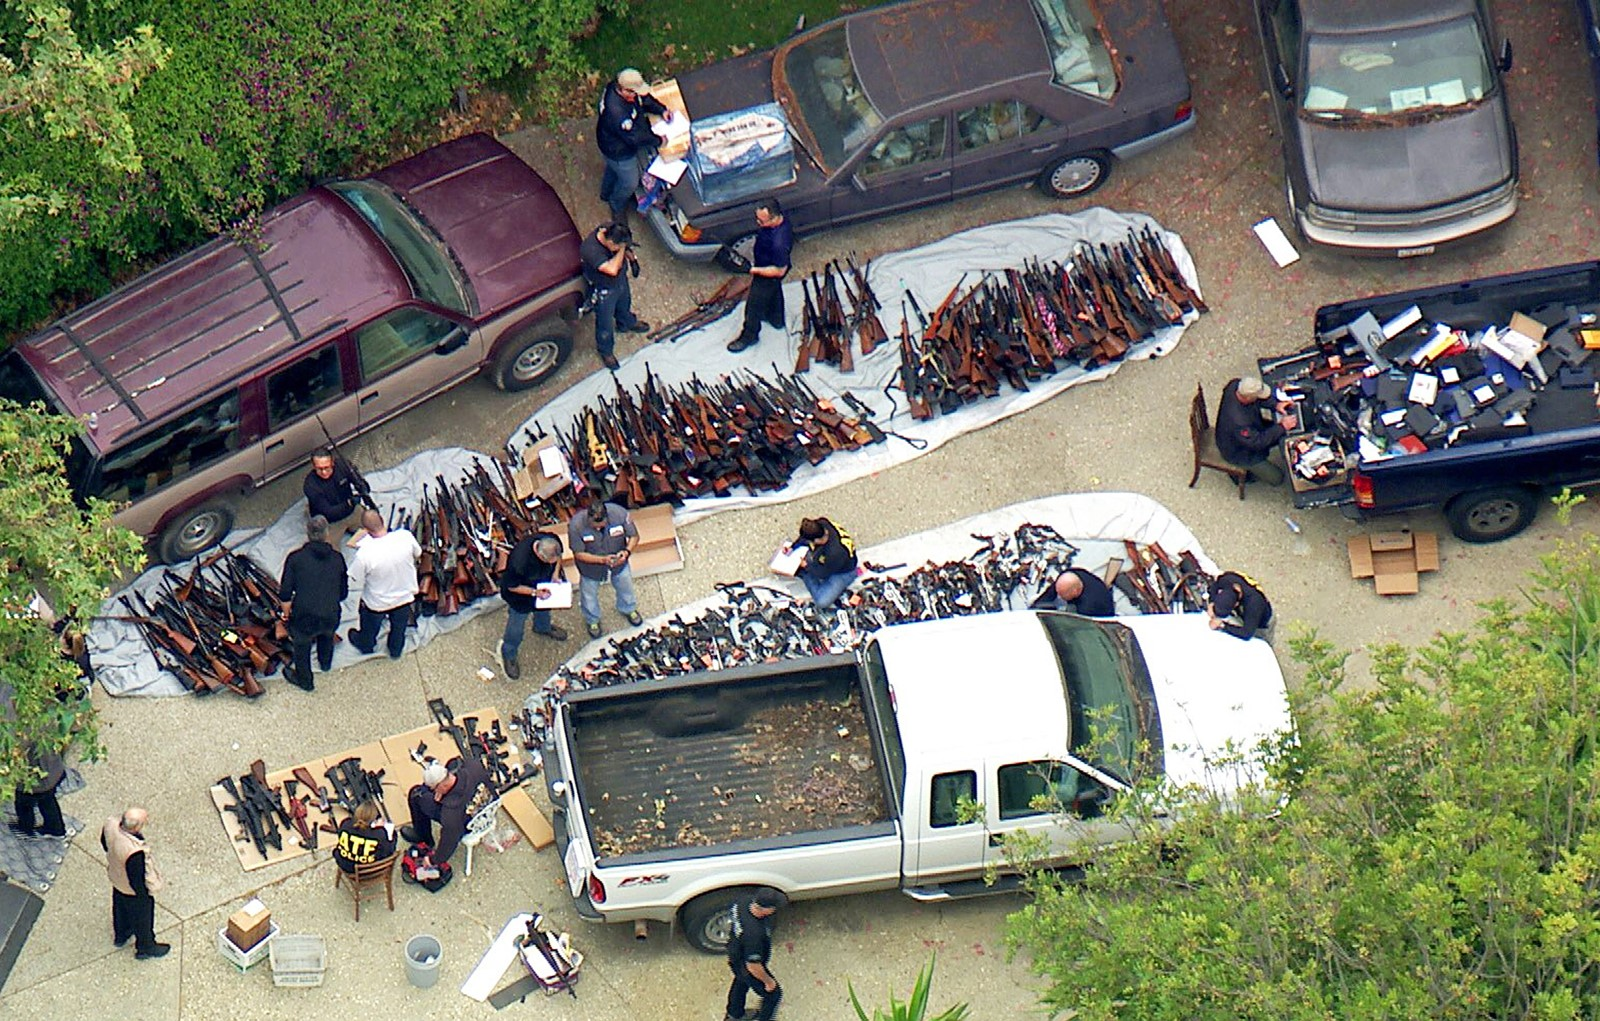 Investigators from the federal Bureau of Alcohol, Tobacco, Firearms and Explosives and the LAPD inspect a cache of weapons seized from a Bel-Air mansion. The sheer number of guns unnerved neighbors. — Photograph: KCBS/KCAL.